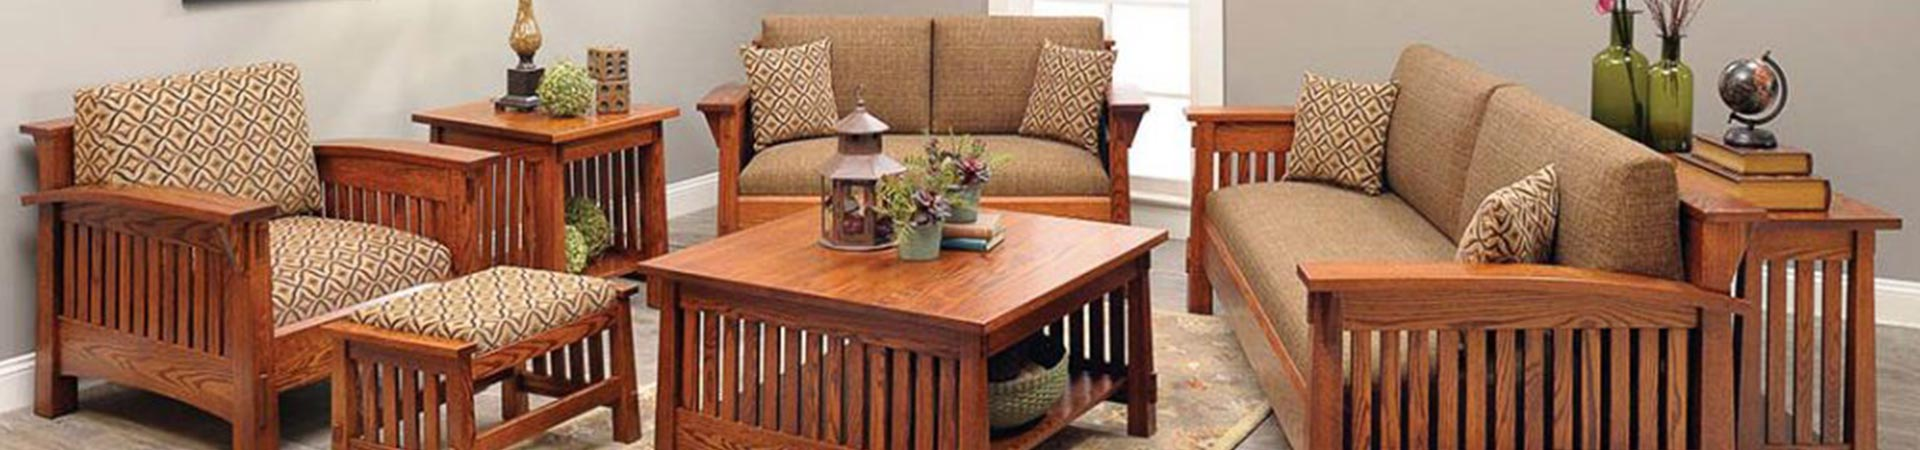 Furniture Repair Services in Jaipur